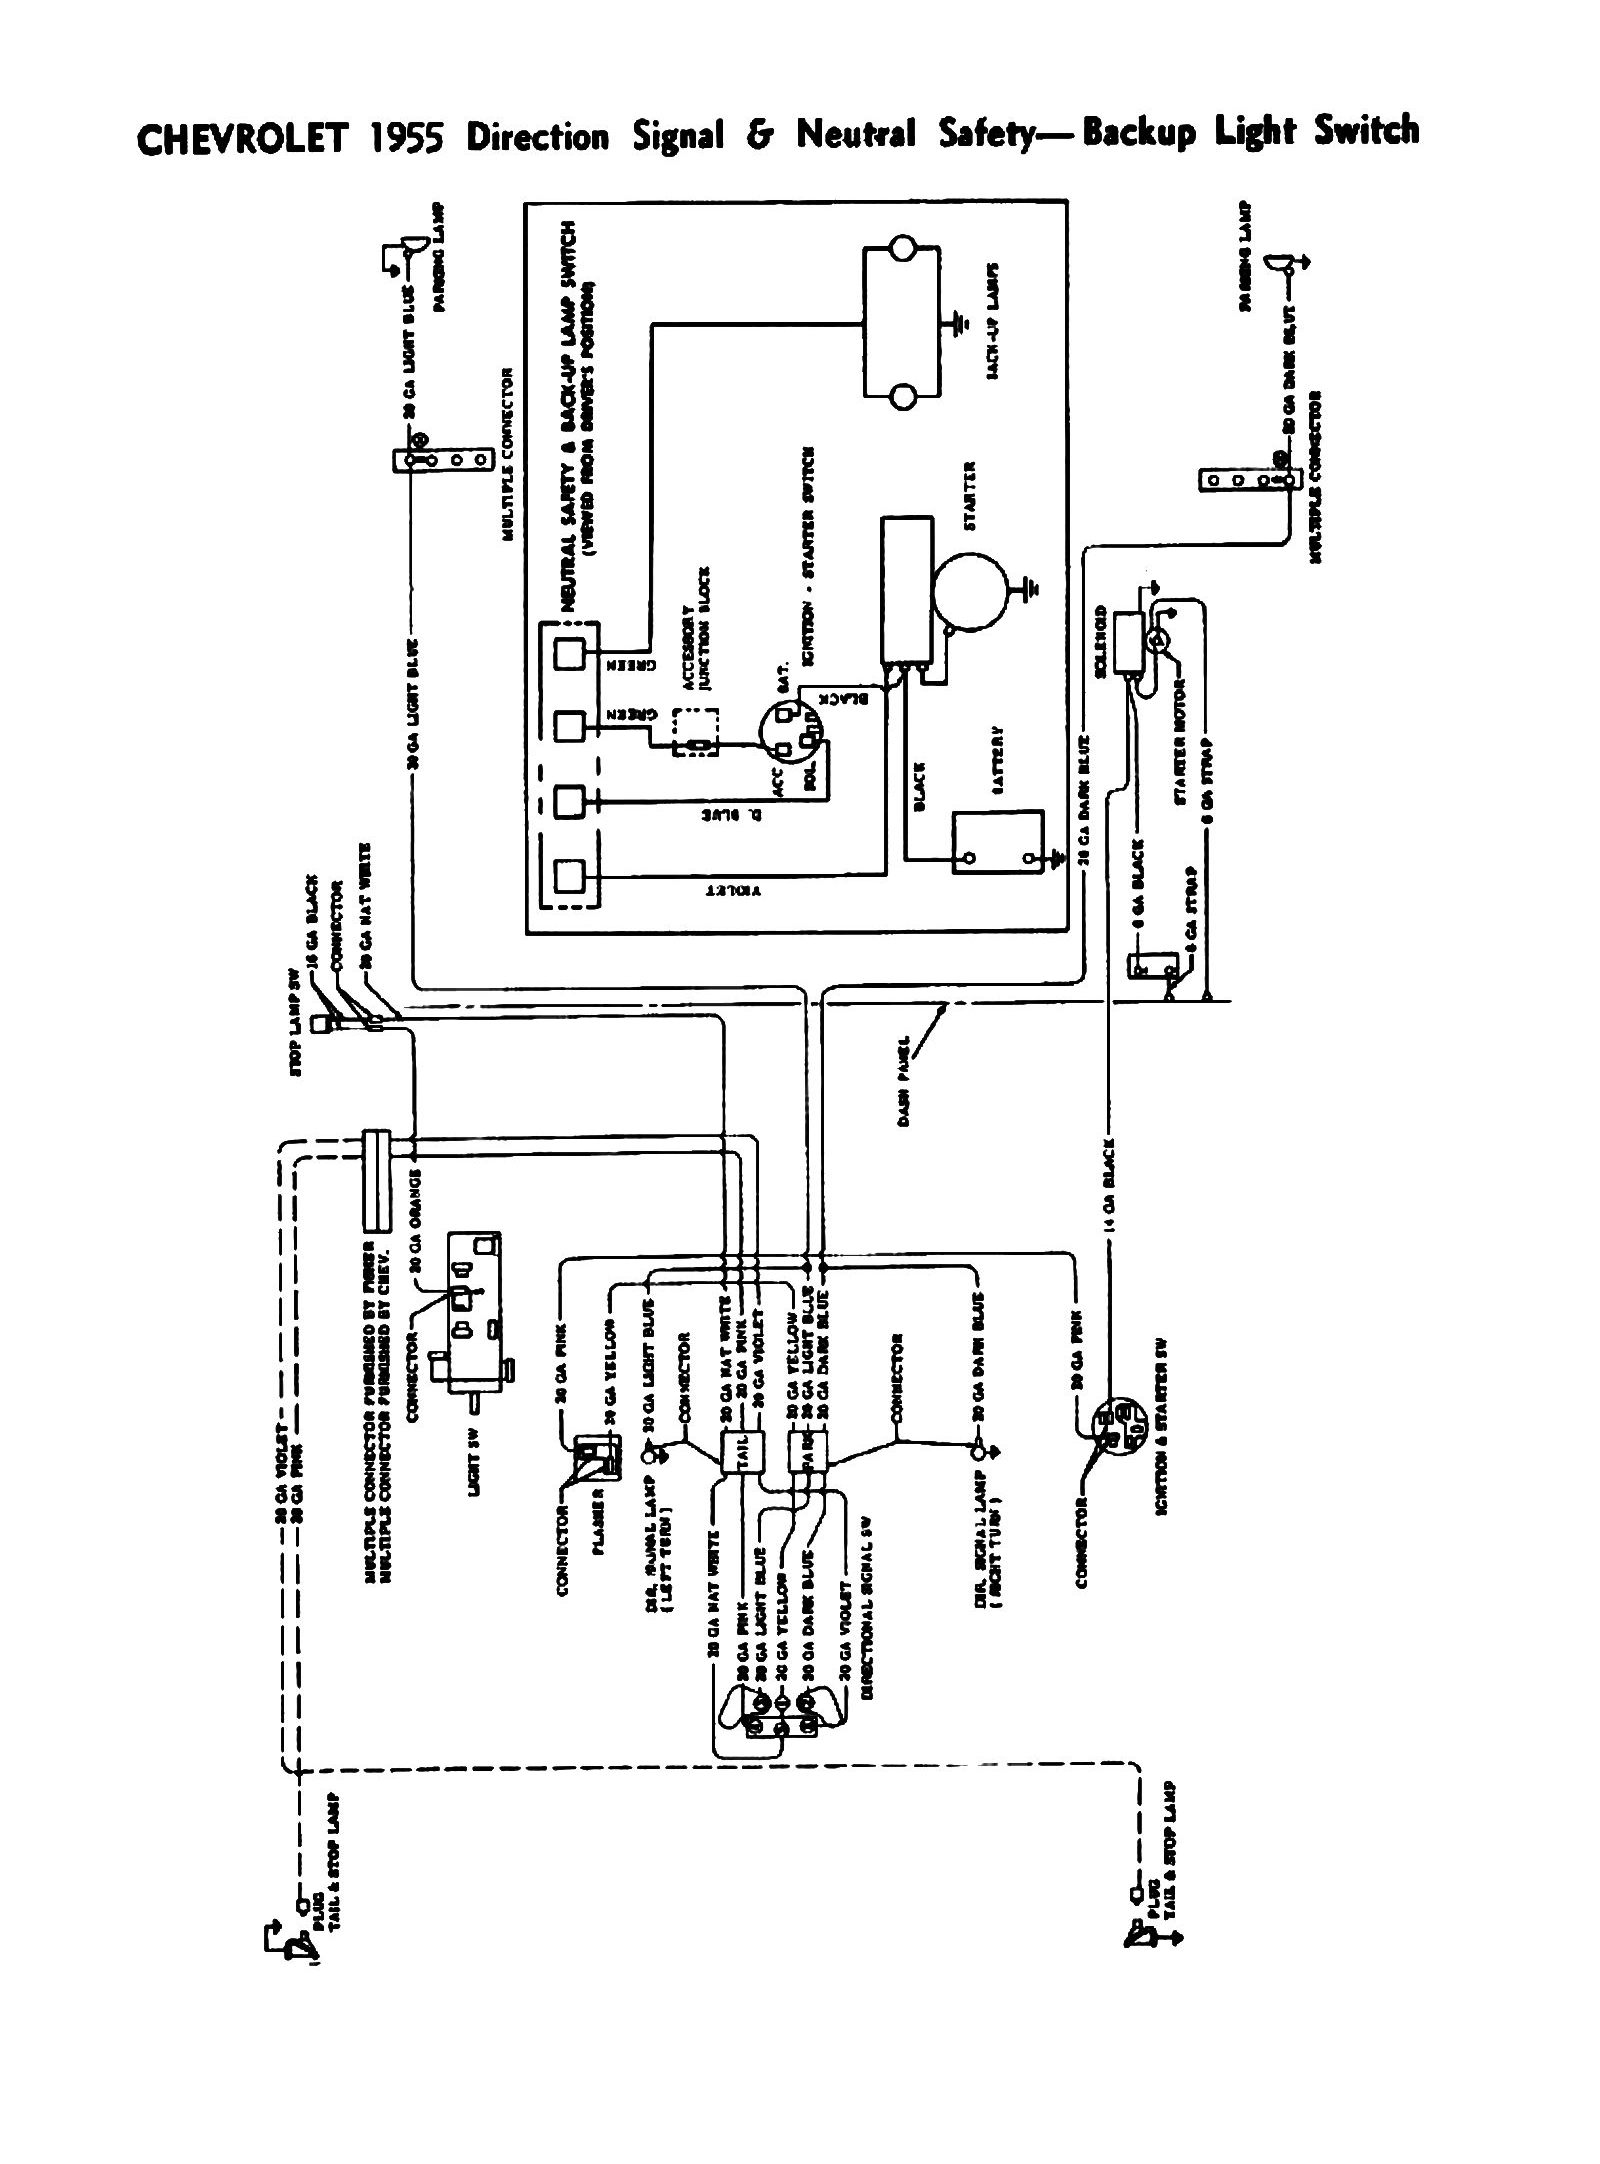 1955 Chevy Truck Headlight Switch Wiring Diagram Hazard Light 55 Turn Signal Todays 1984